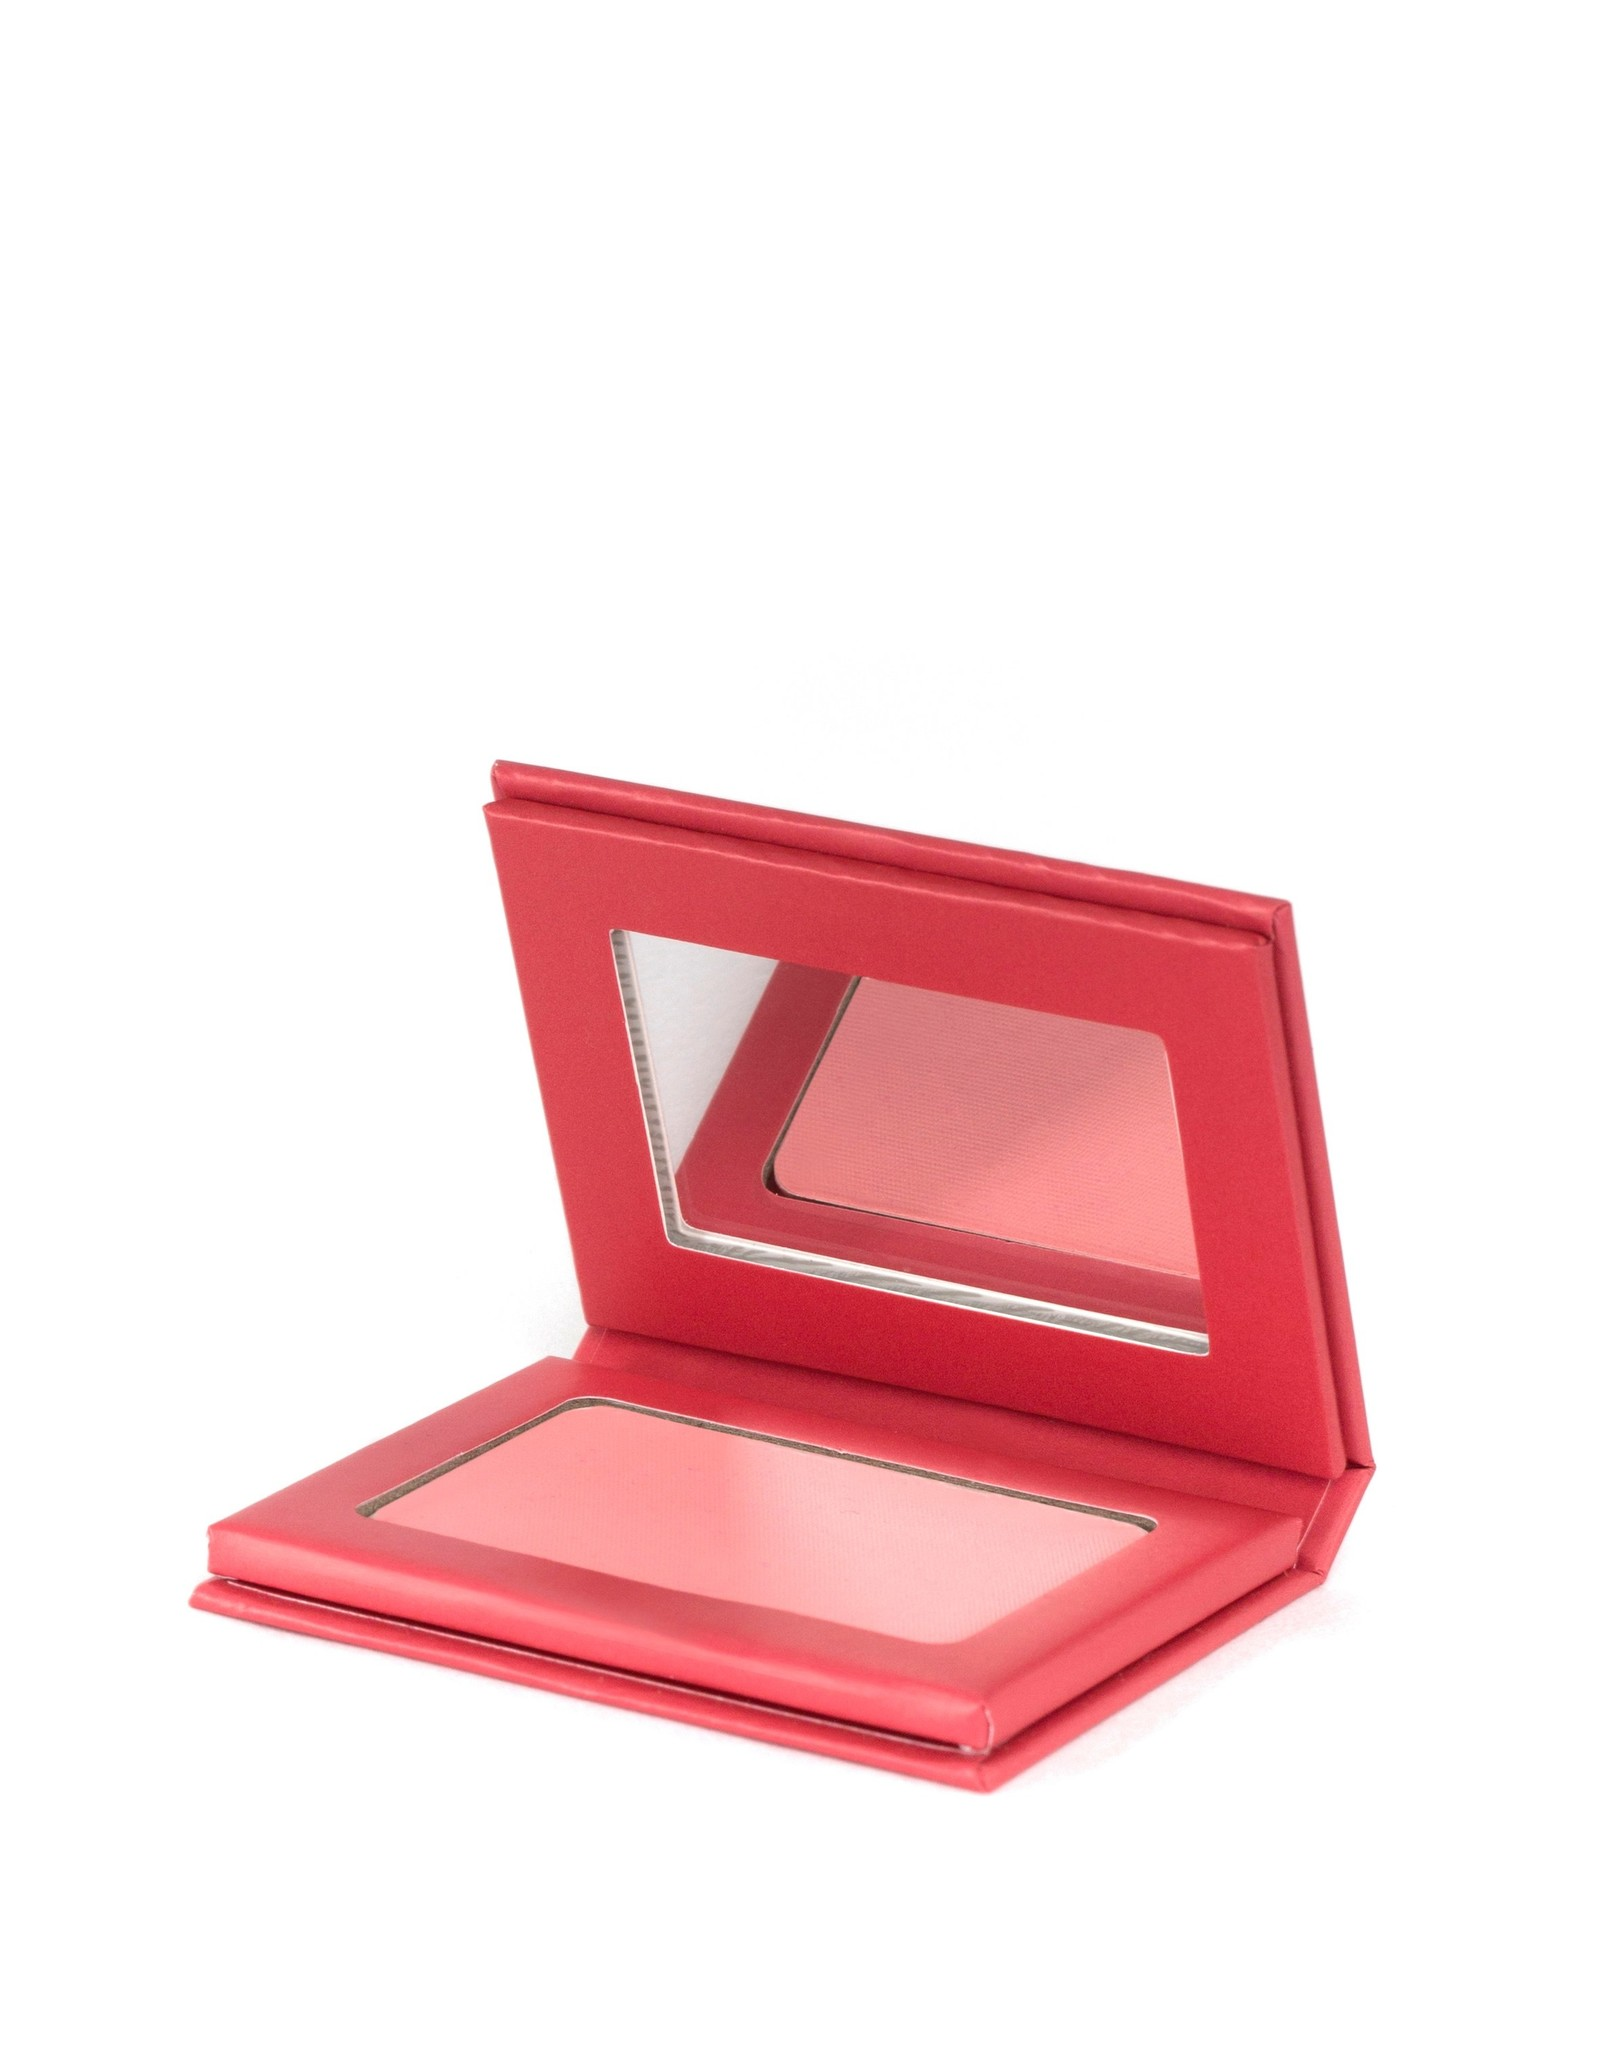 Go as ur Vegan blush